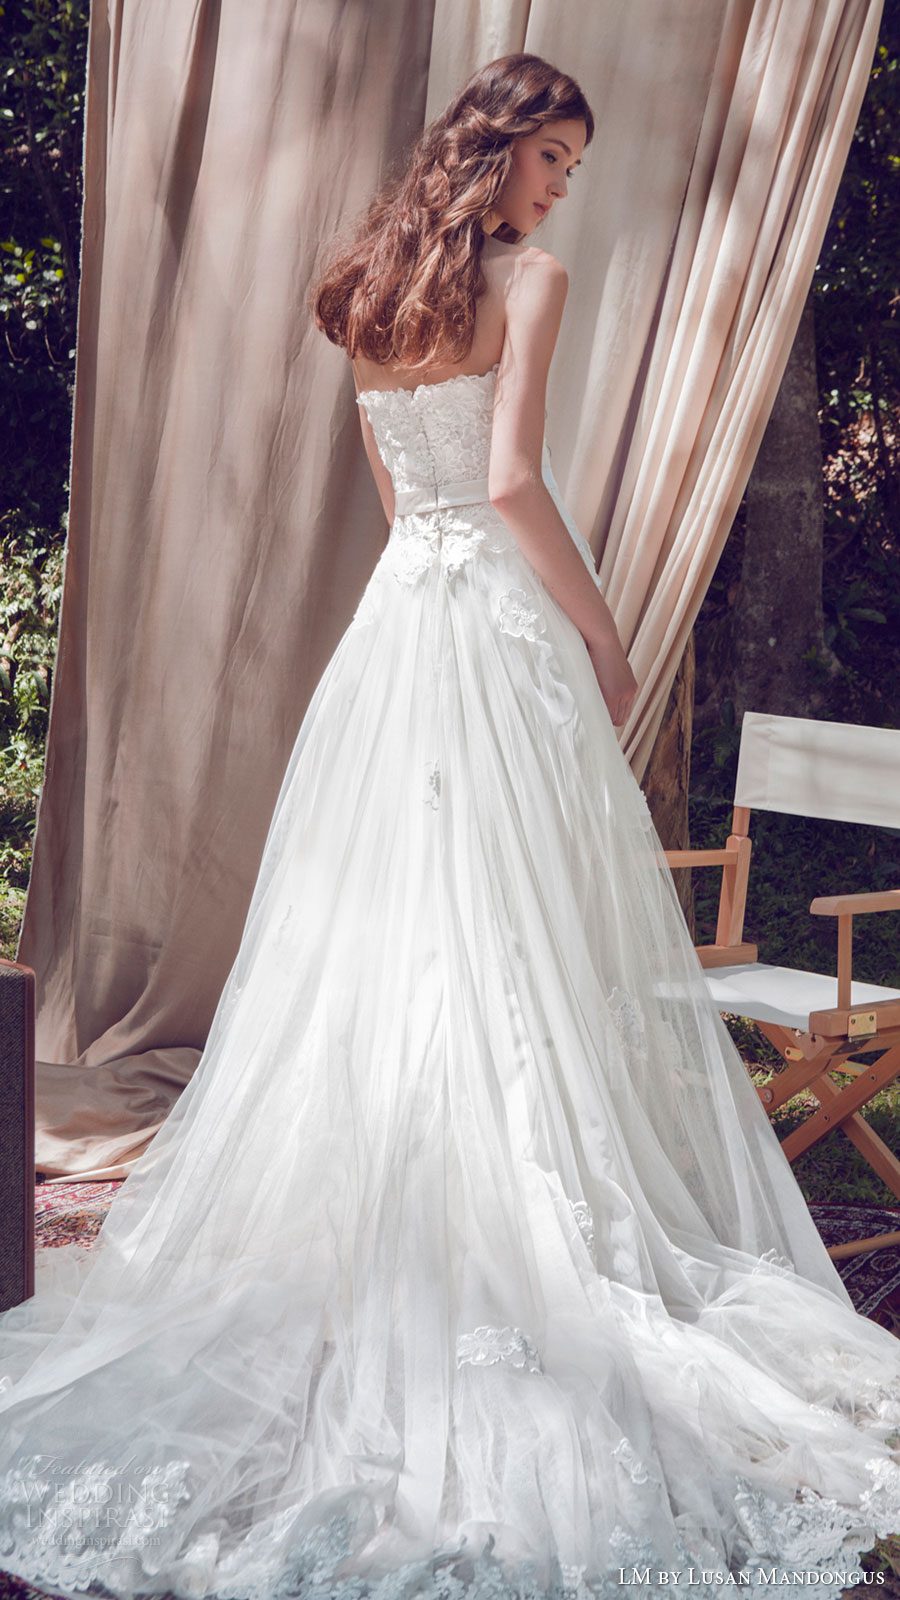 lm lusan mandongus bridal 2017 strapless sweetheart aline lace wedding dress (lm3235b) bv romantic train